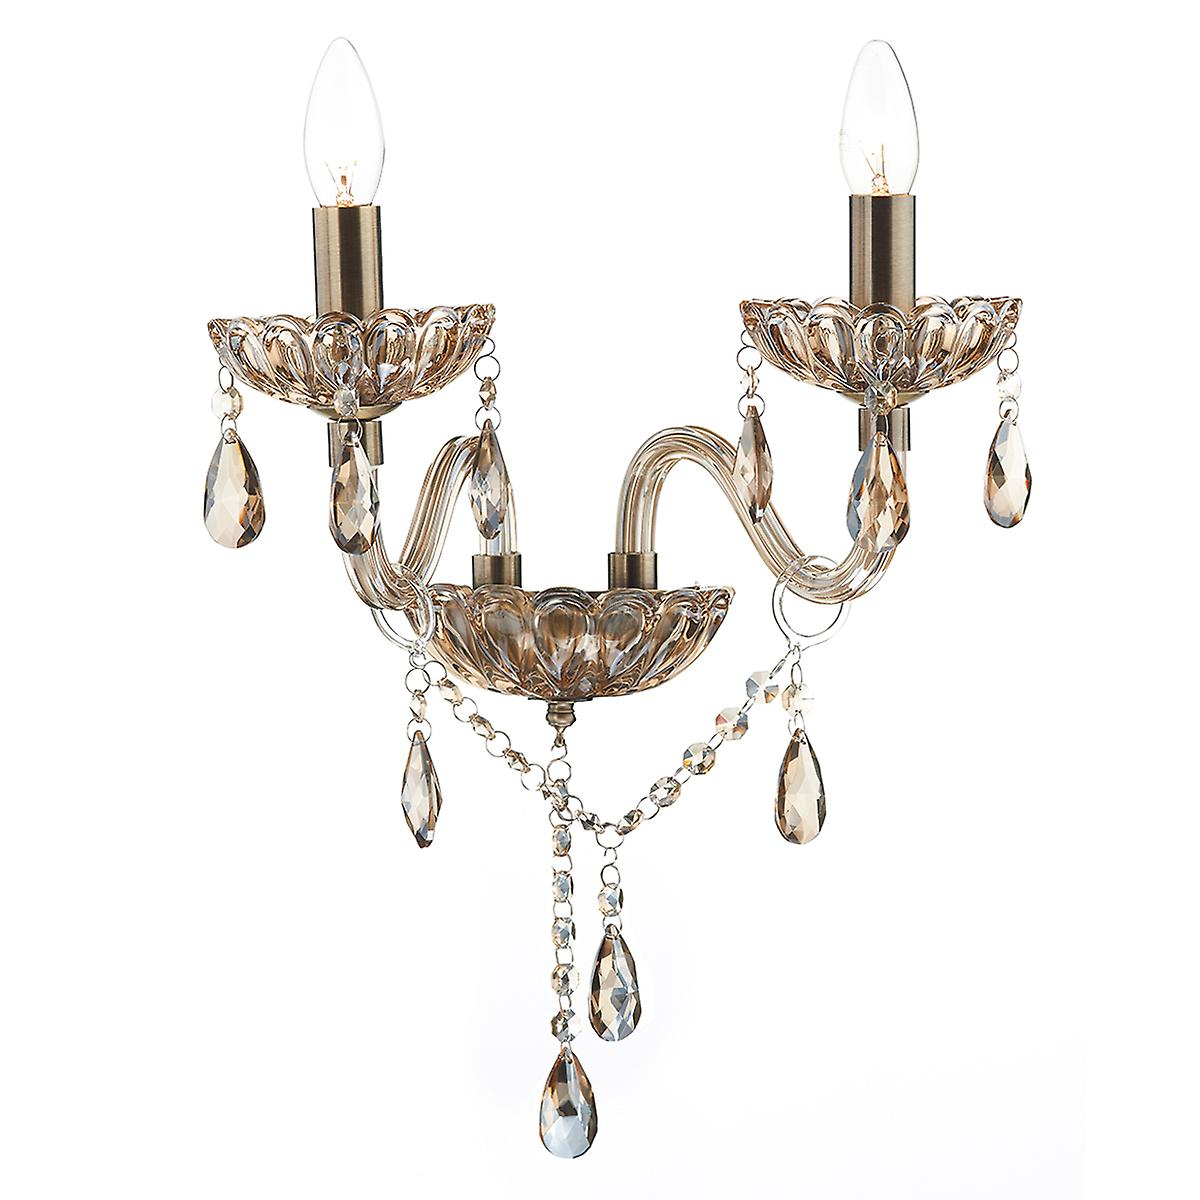 Dar RAP0906 Raphael Double Wall Bracket With Champagne Crystal